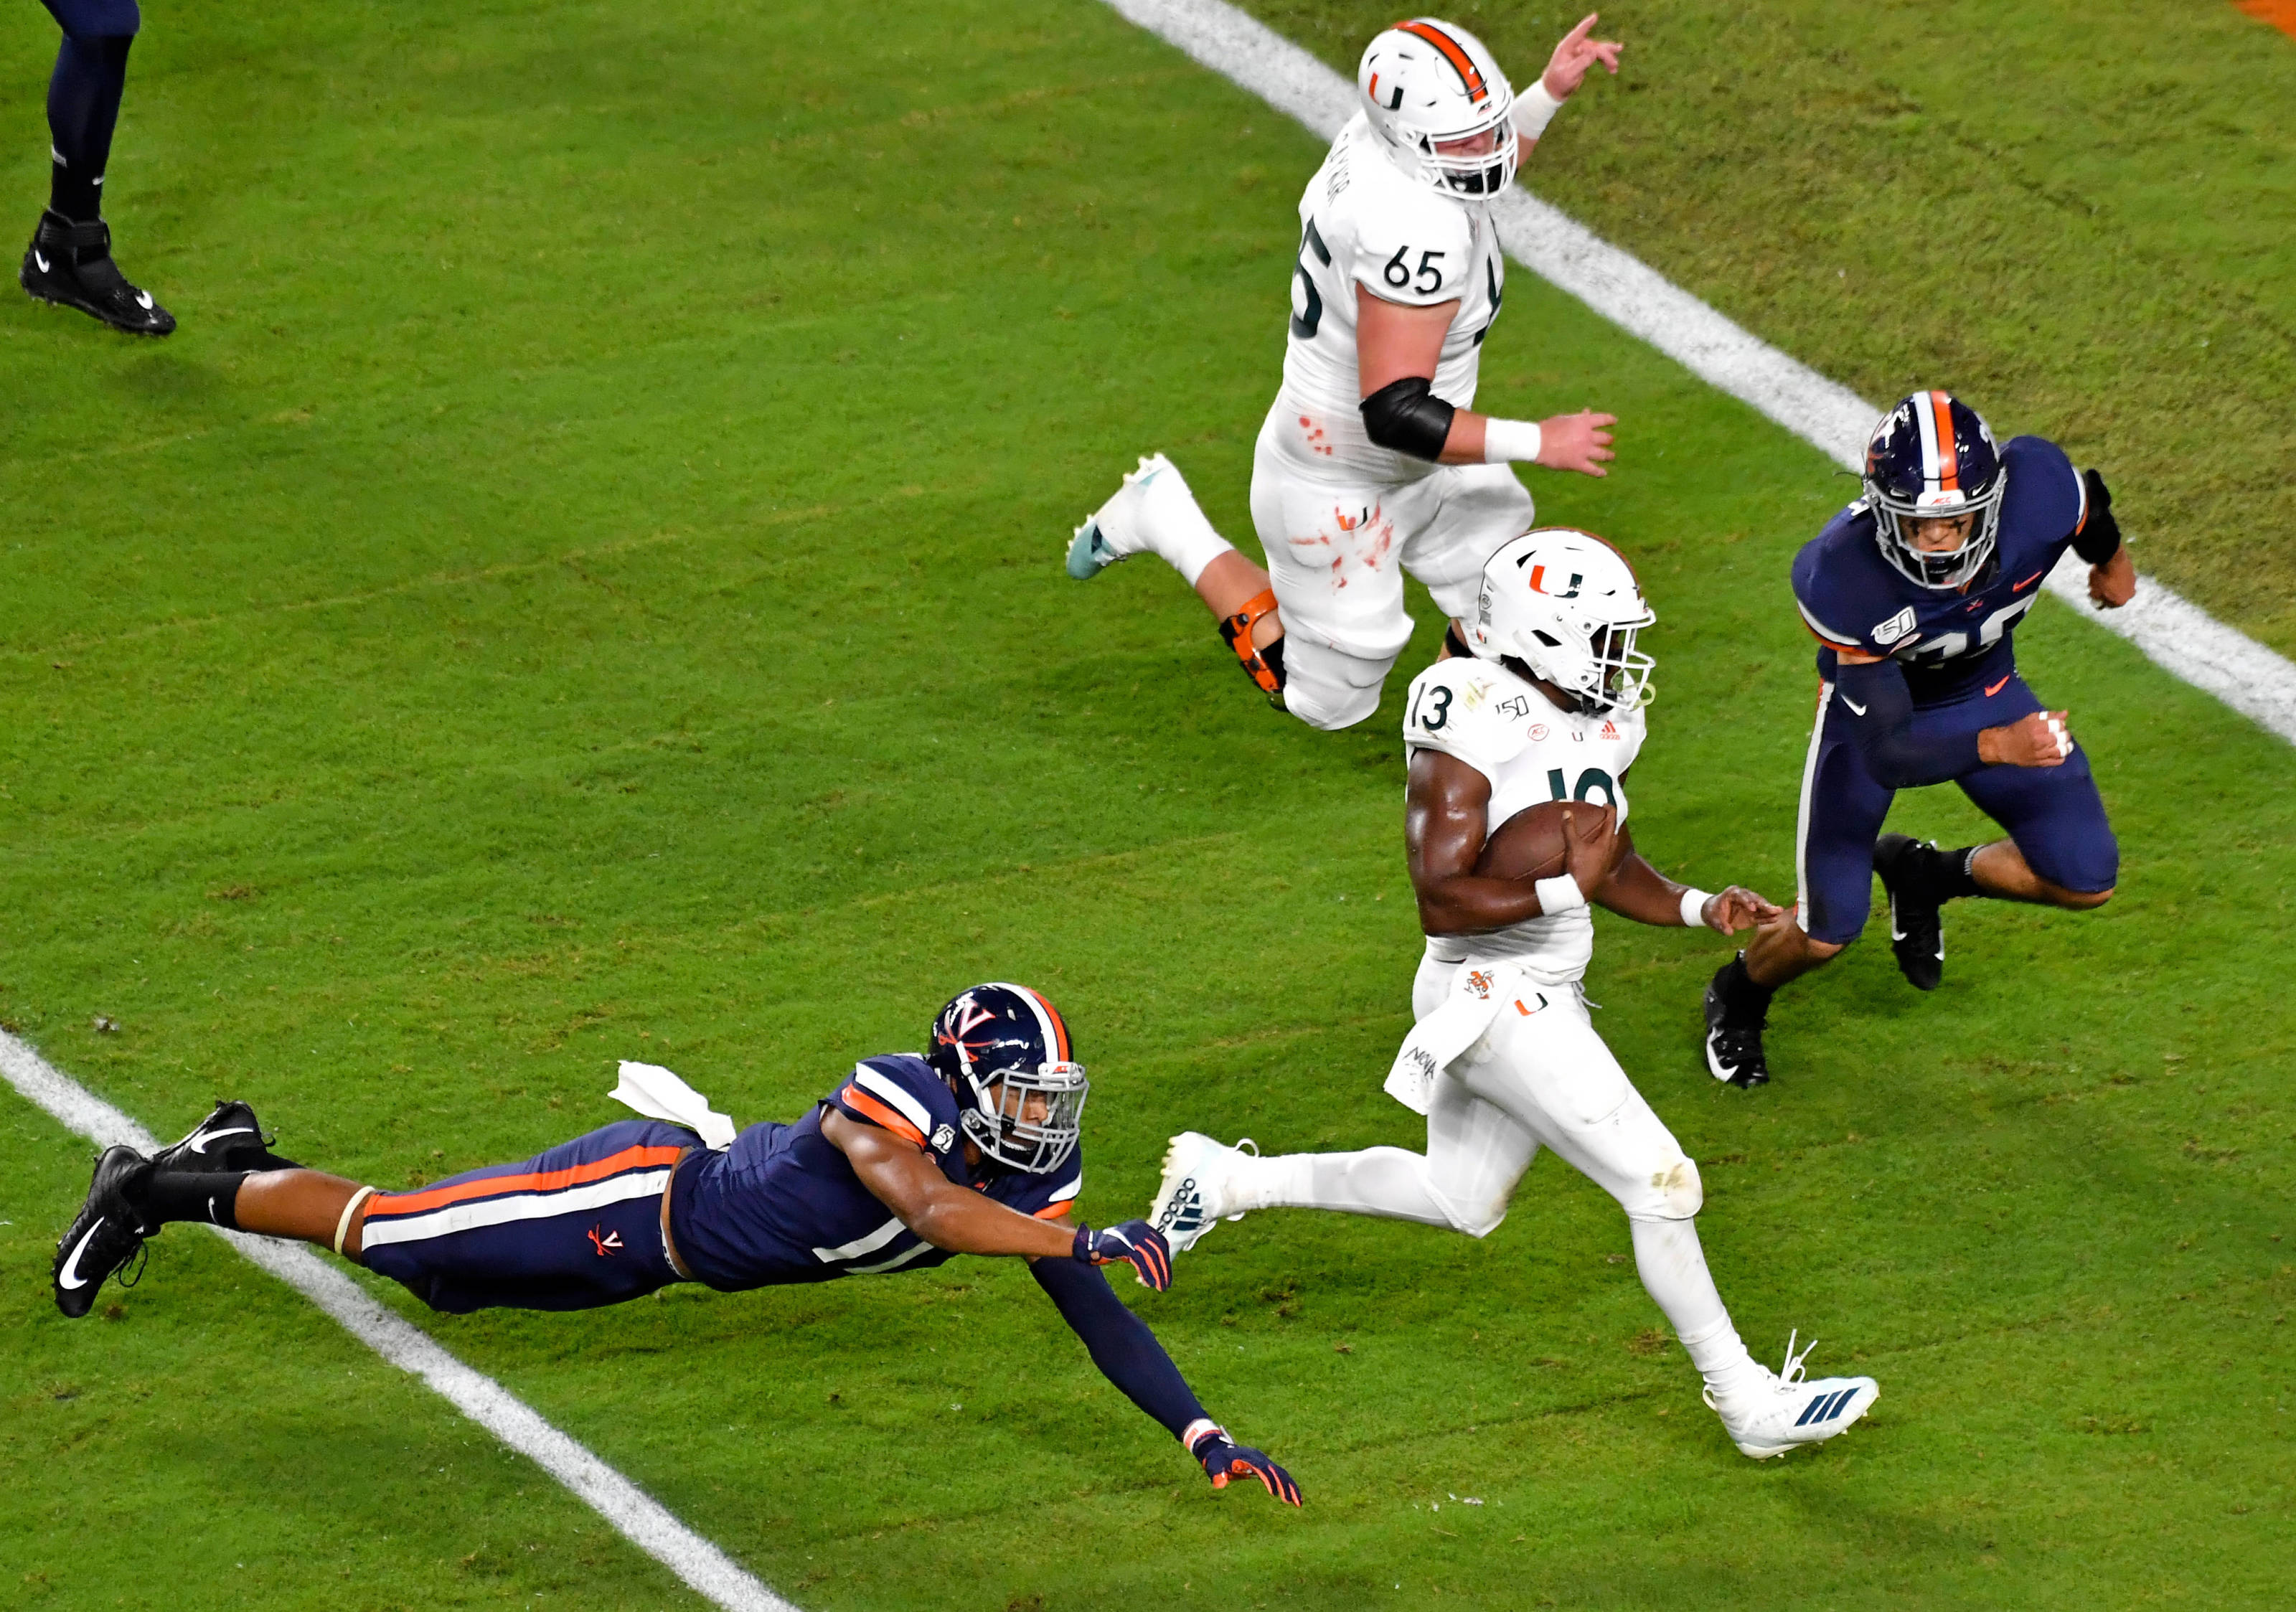 Miami Hurricanes Wrs By Committee On Newest Depth Chart